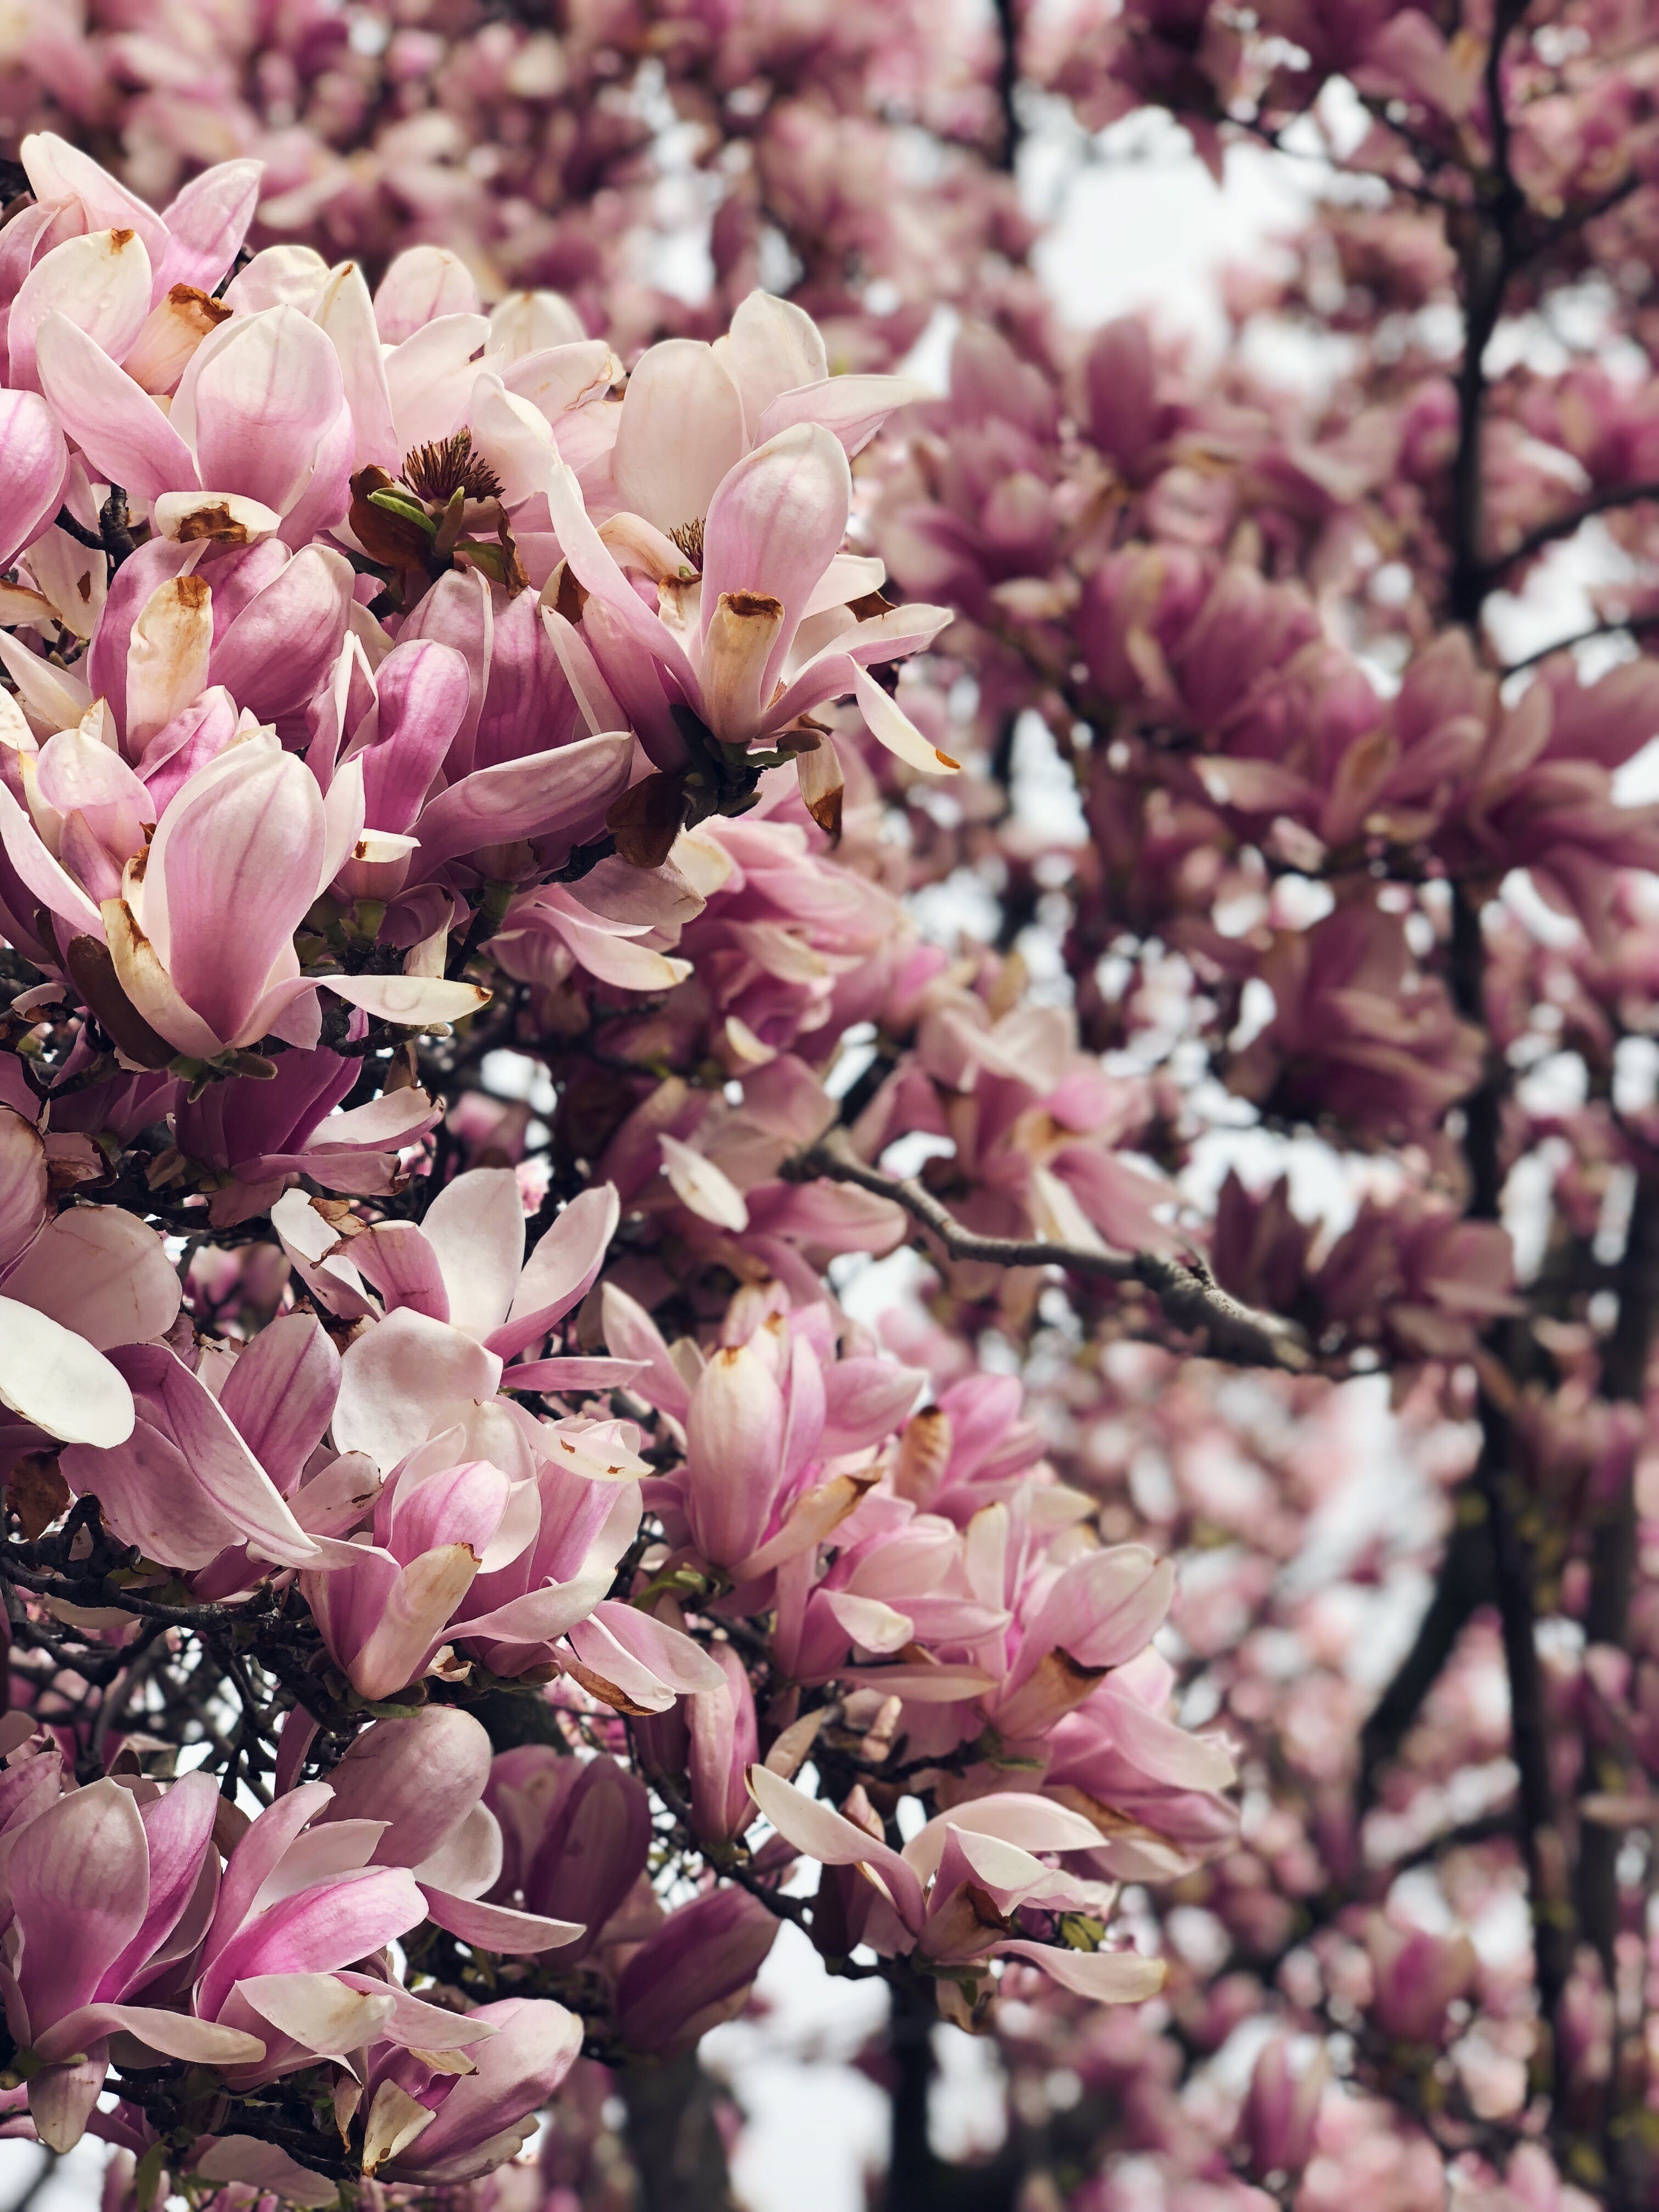 Free stock photo of flowers, nature, pink flowers